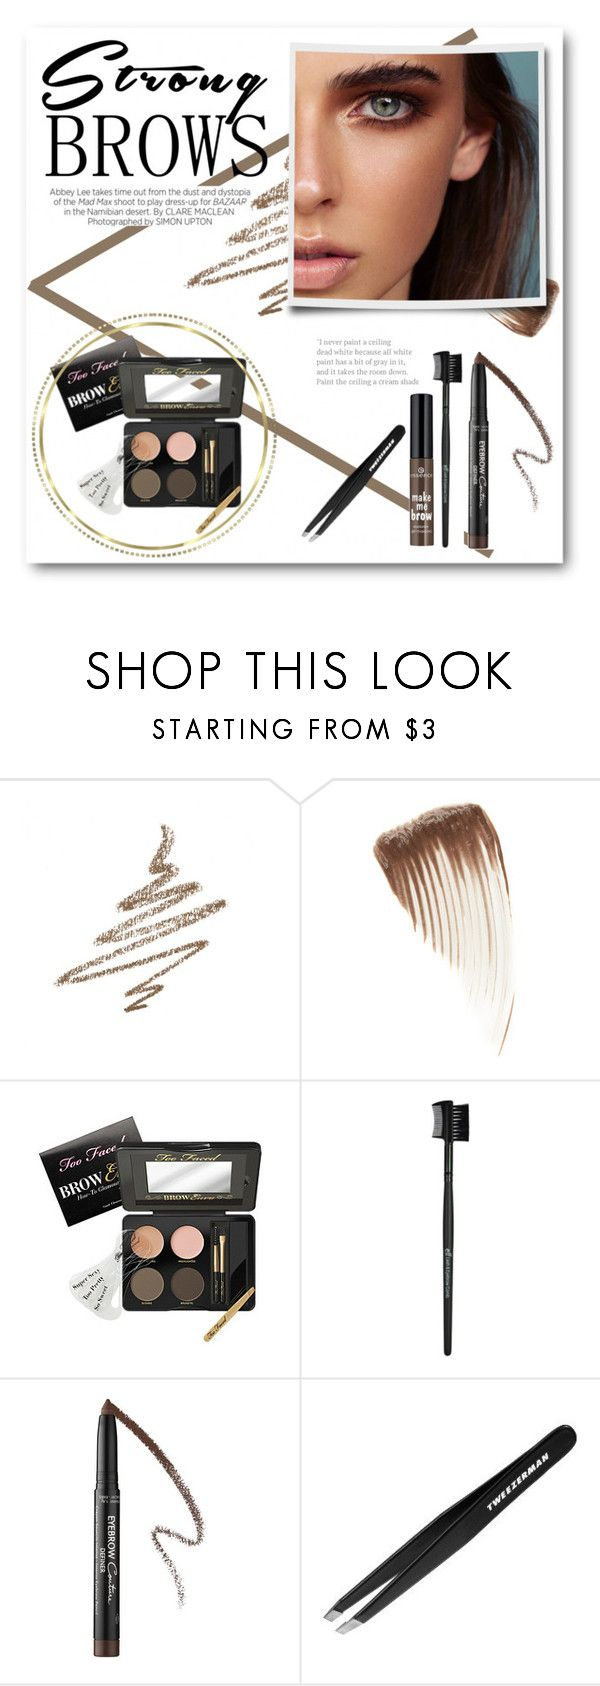 """Strong Brows"" by lalalaballa22 ❤ liked on Polyvore featuring beauty, Anastasia Beverly Hills, B The Eyebrow Experts, Brinley Co, Too Faced Cosmetics, Givenchy, Kershaw, Tweezerman, BeautyTrend and strongbrows"